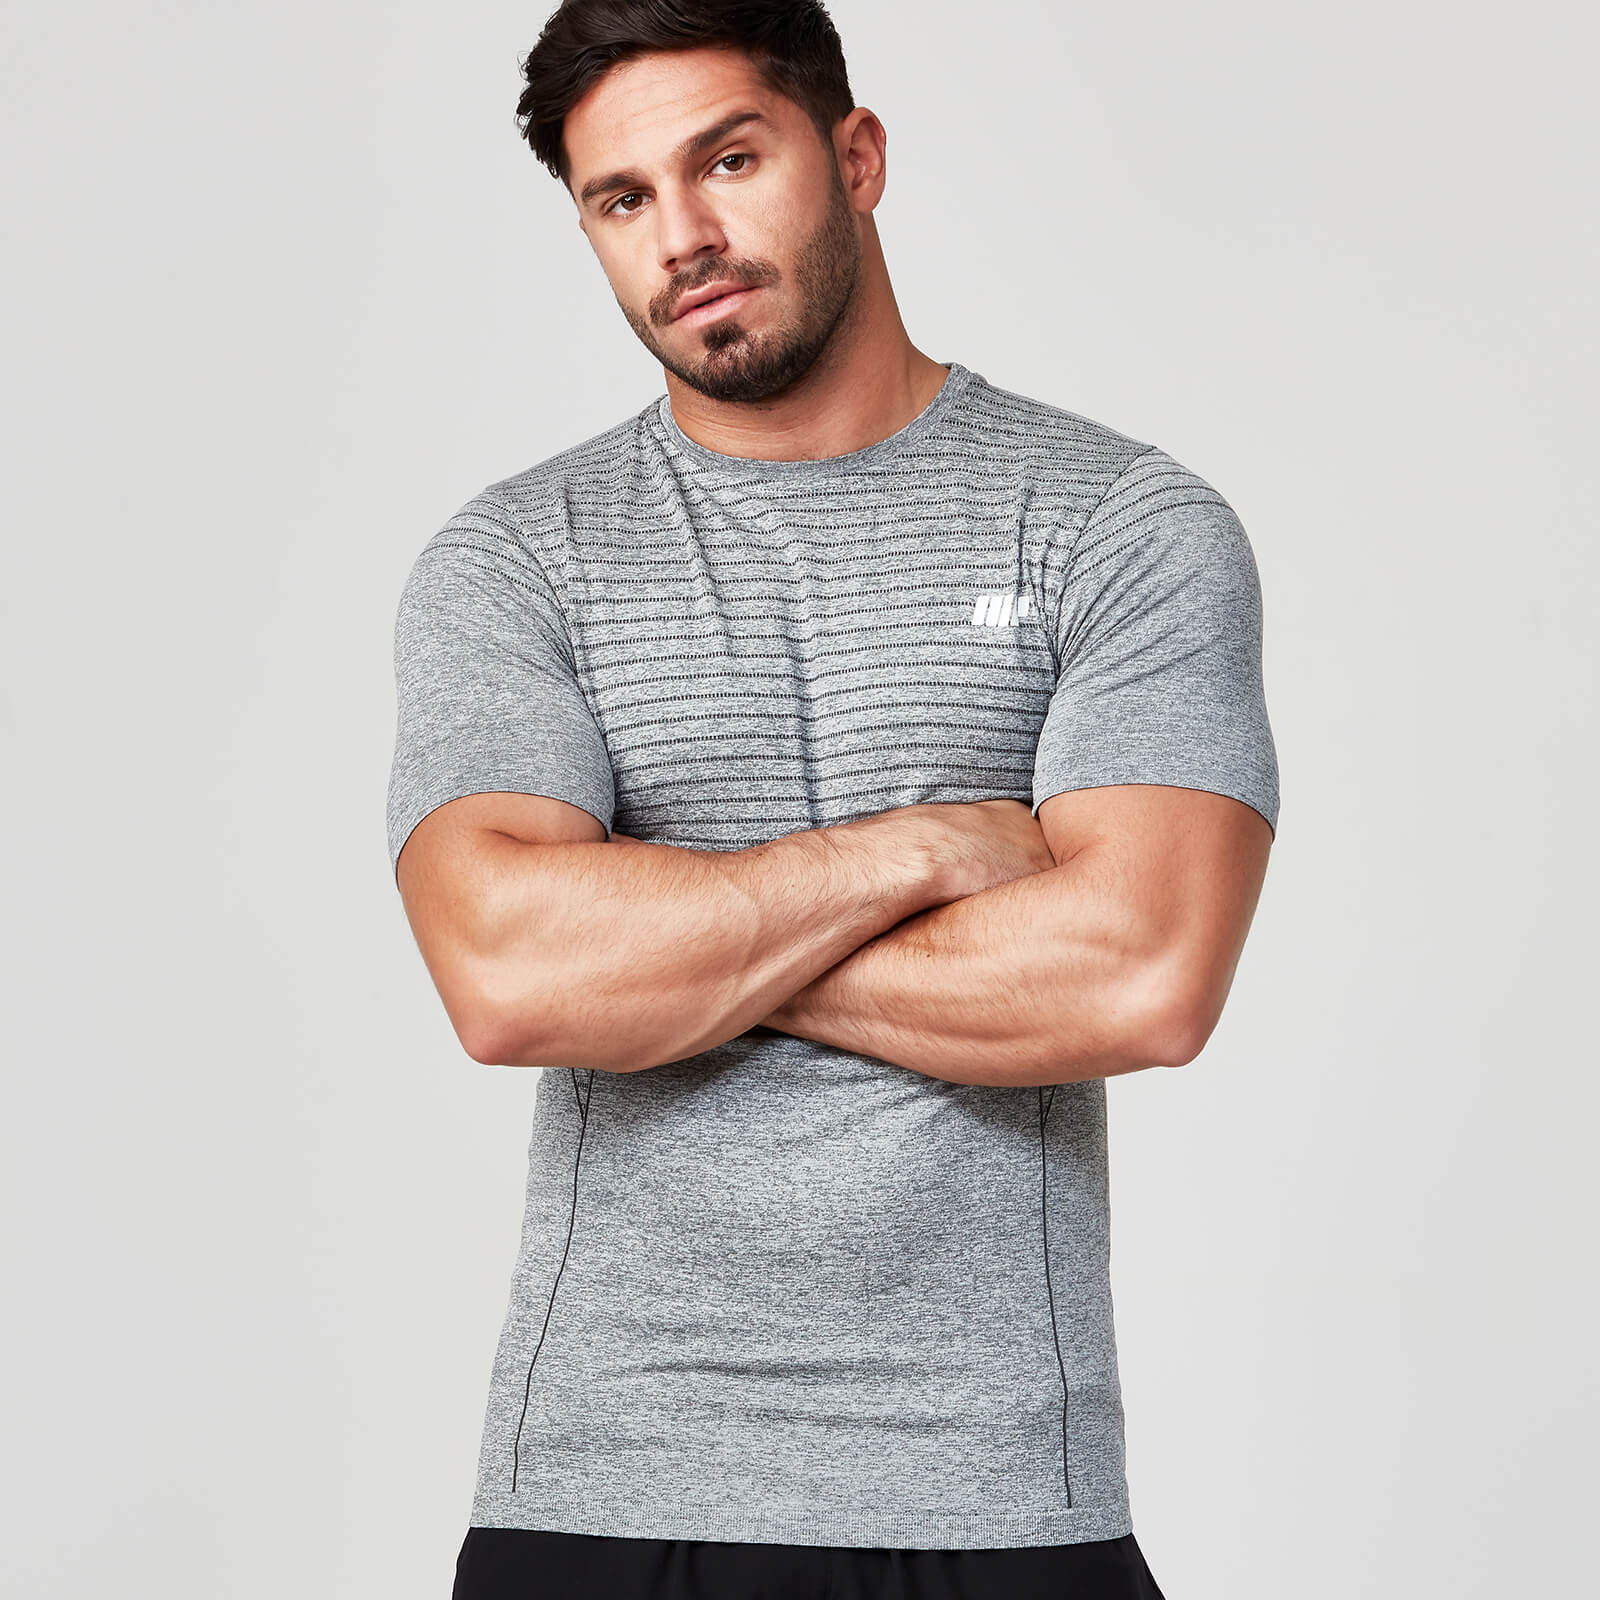 Myprotein Seamless Short Sleeve T-Shirt - Grey Marl - XXL